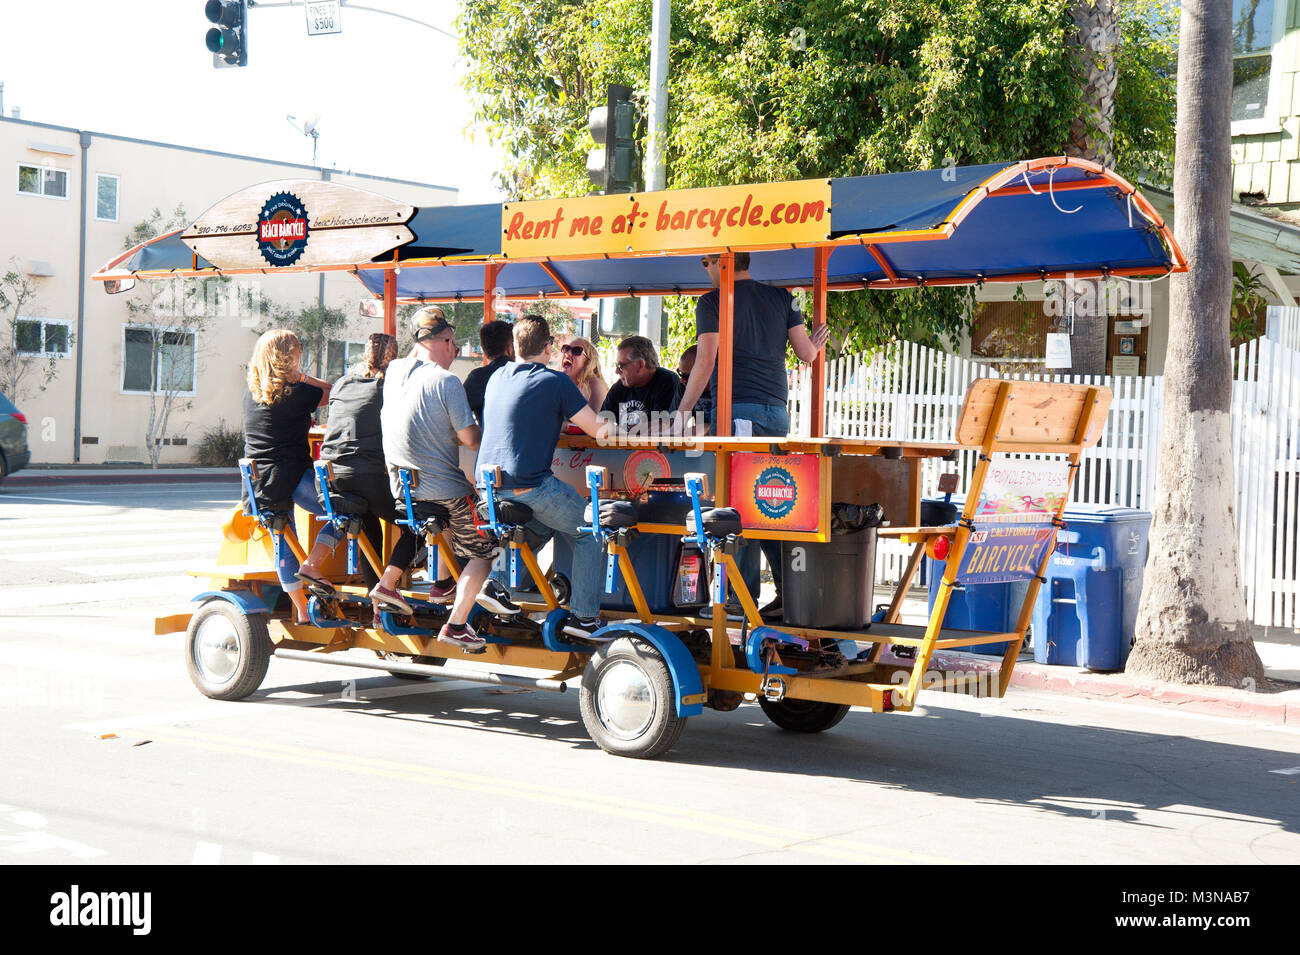 Barcycle, a bar on wheels with patrons cycling in Santa Monica CA - Stock Image